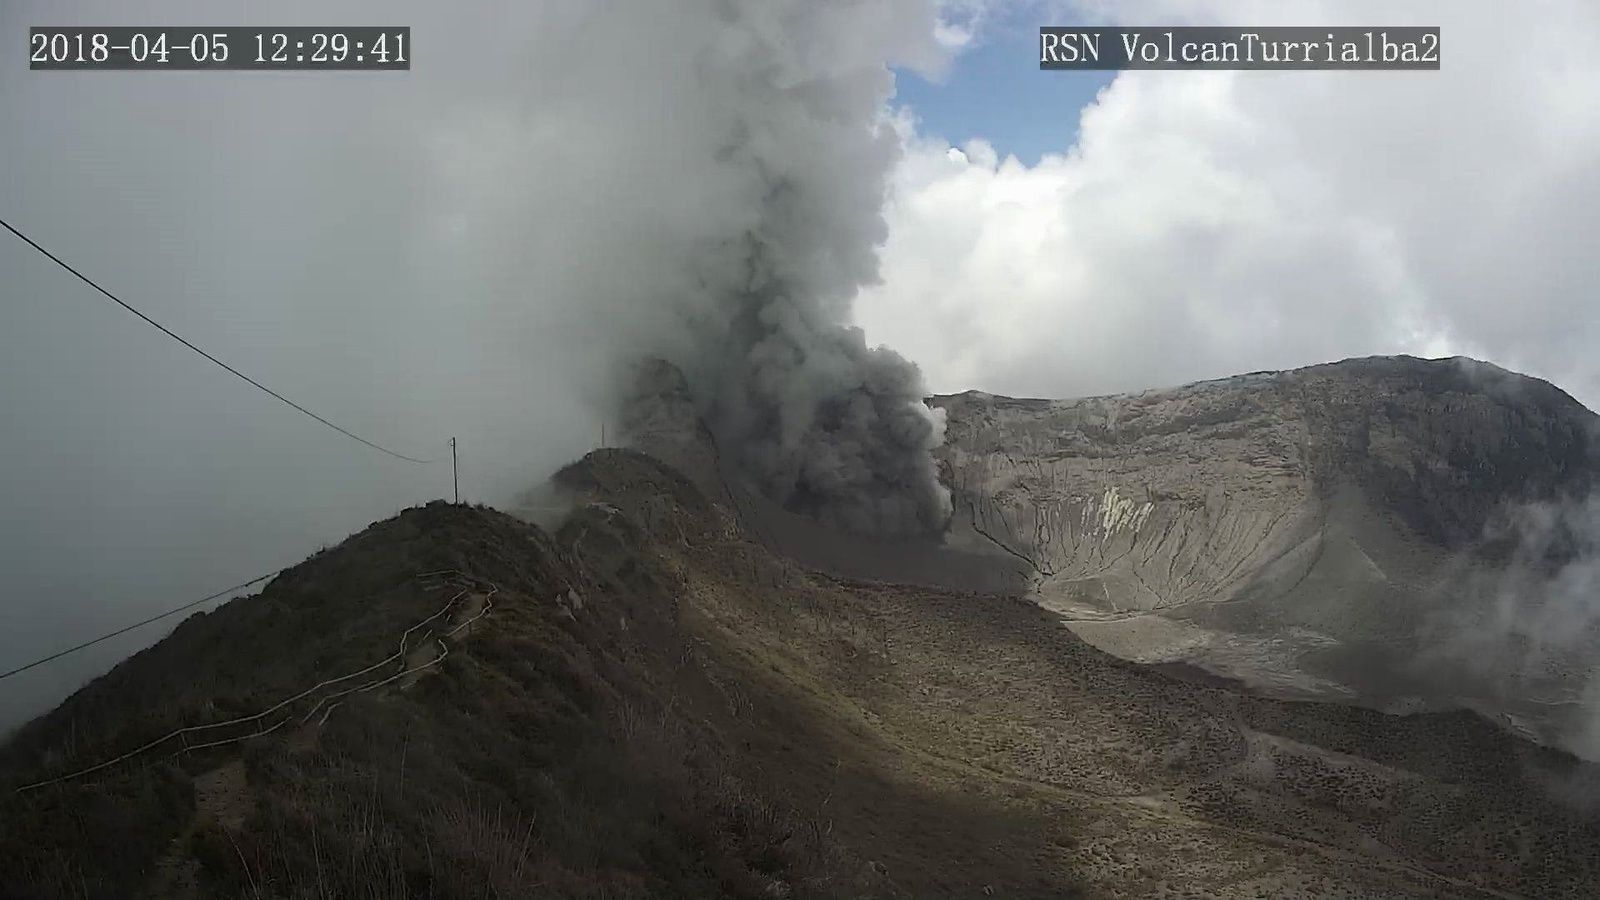 Turrialba - 05.04.2018 / 12h28 -12h29 - webcam RSN